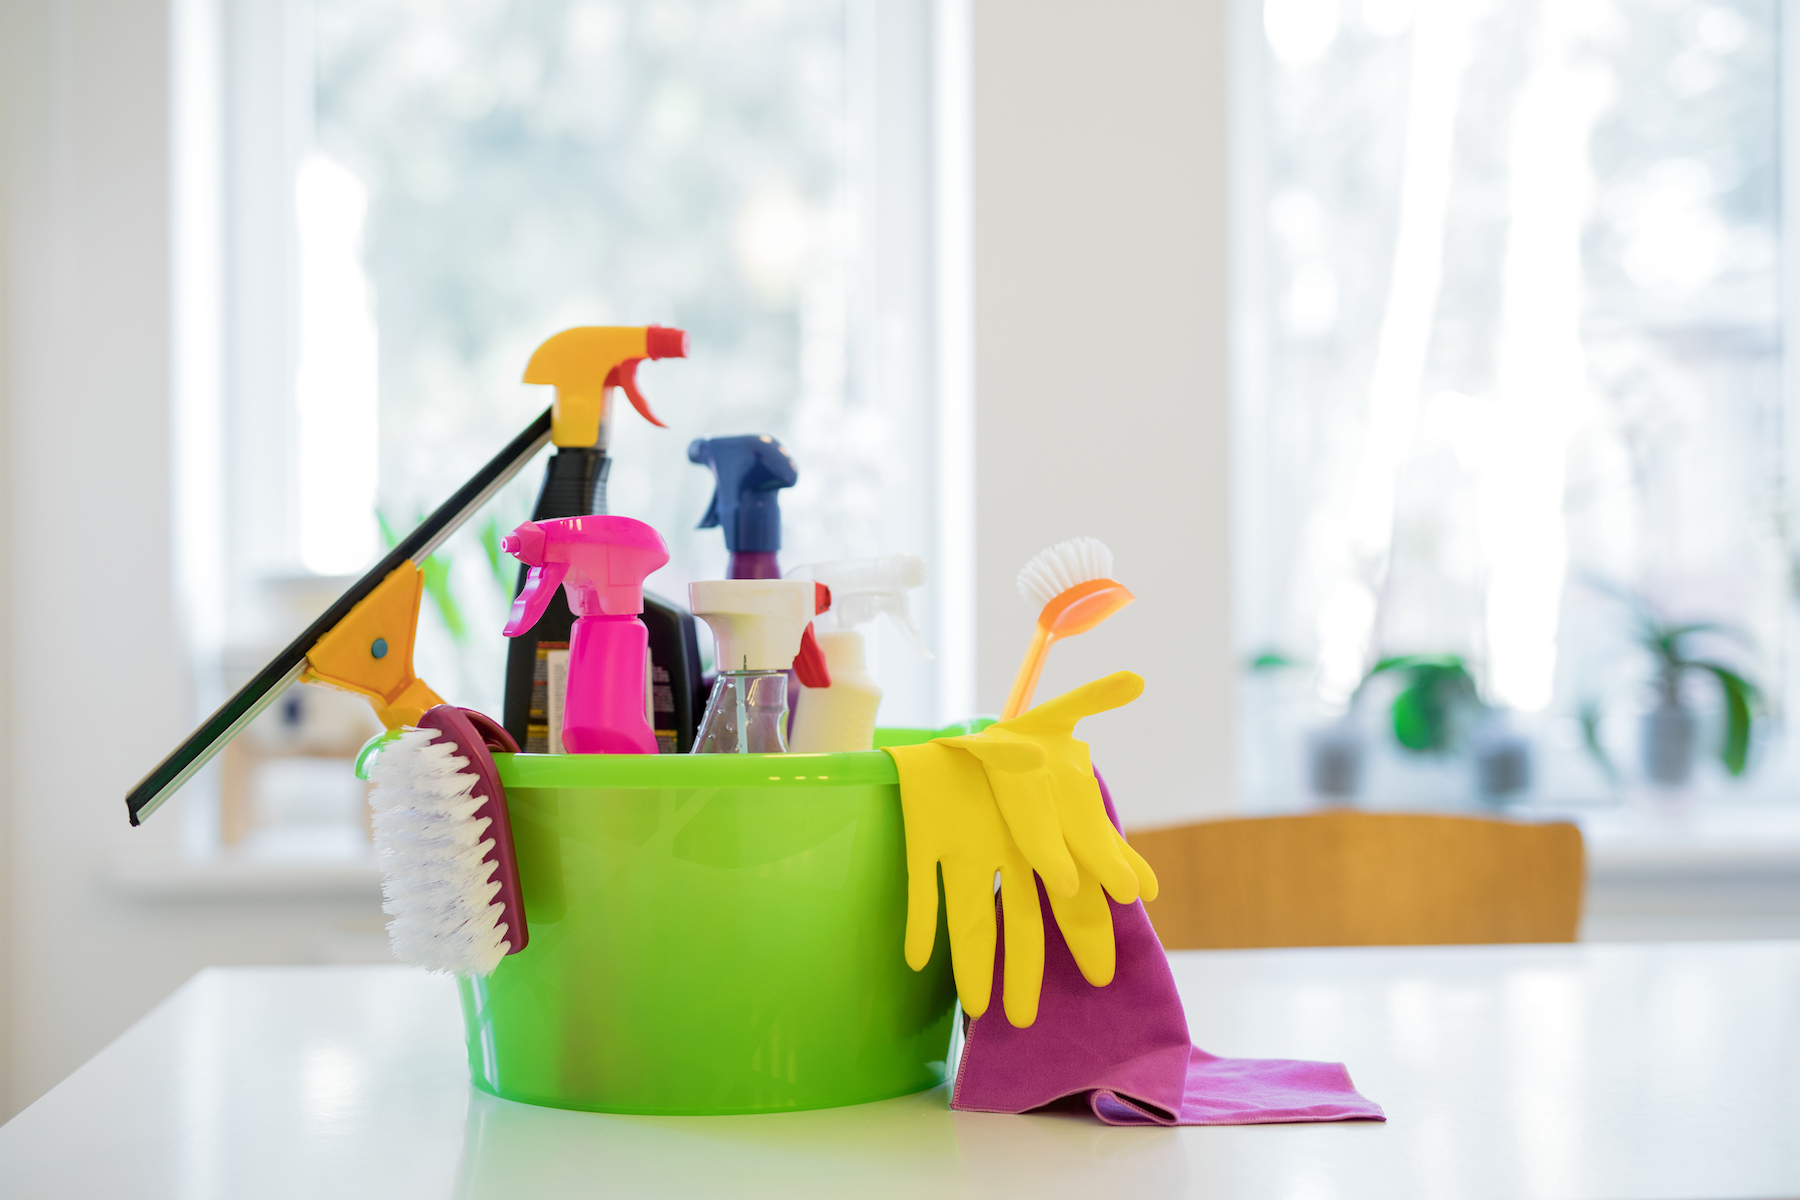 Cleaning Bedroom Supplies Caddy on kitchen counter